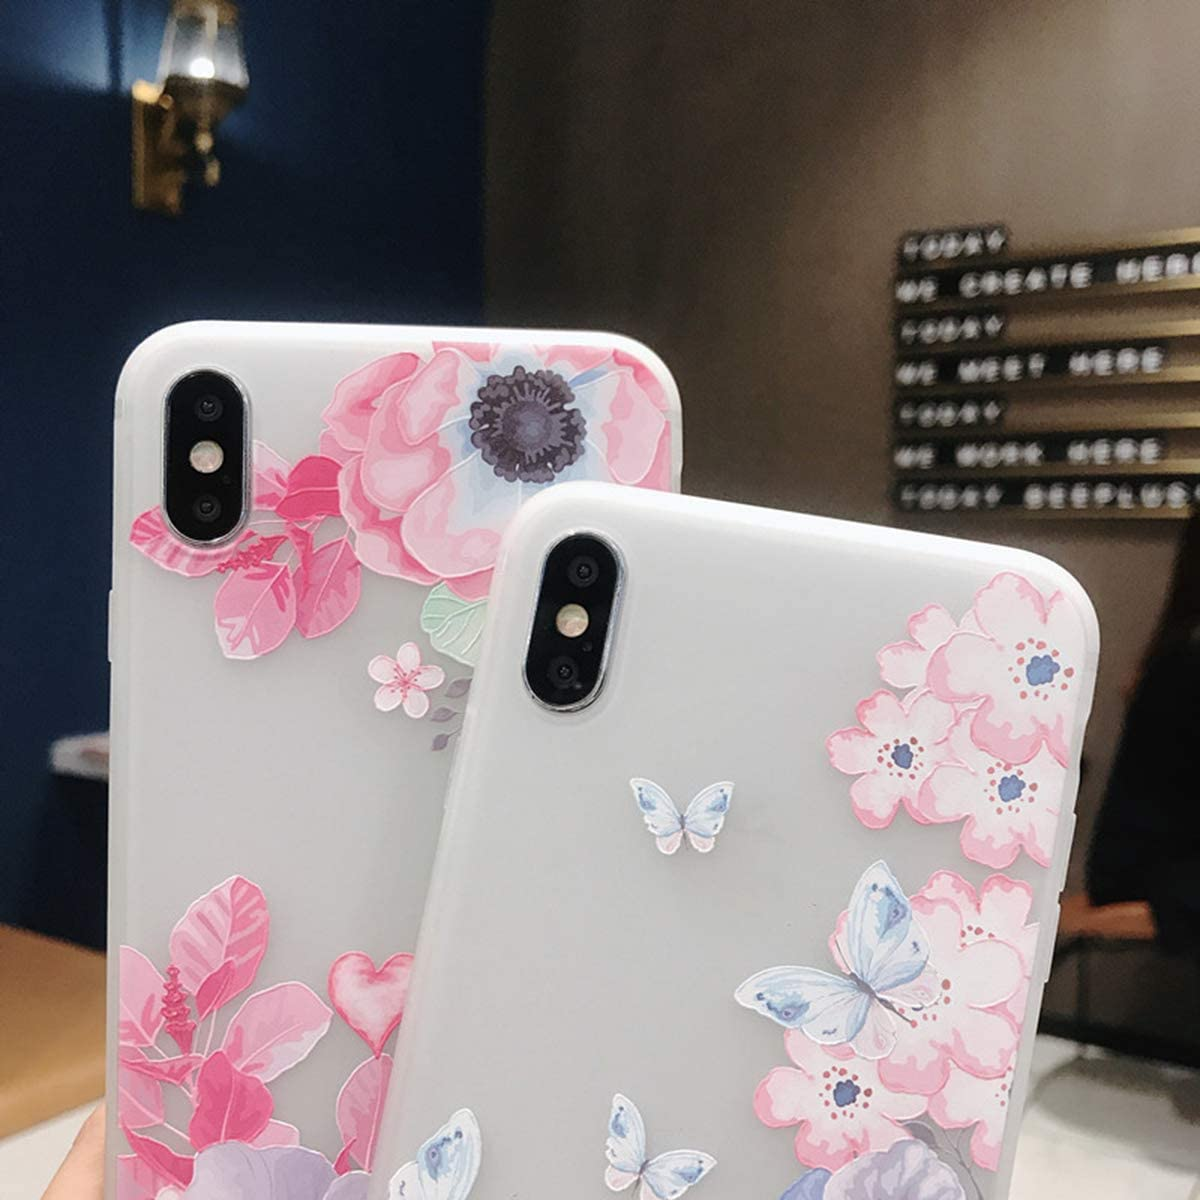 White Leopard Pattern No Glitter GLBYDLO Leopard Case for New iPhone 11 Pro Max Cute Case for Girls Women Slim Thin Soft TPU Silicone Protective Phone Case Cover for iPhone 11 Pro Max 6.5 inch